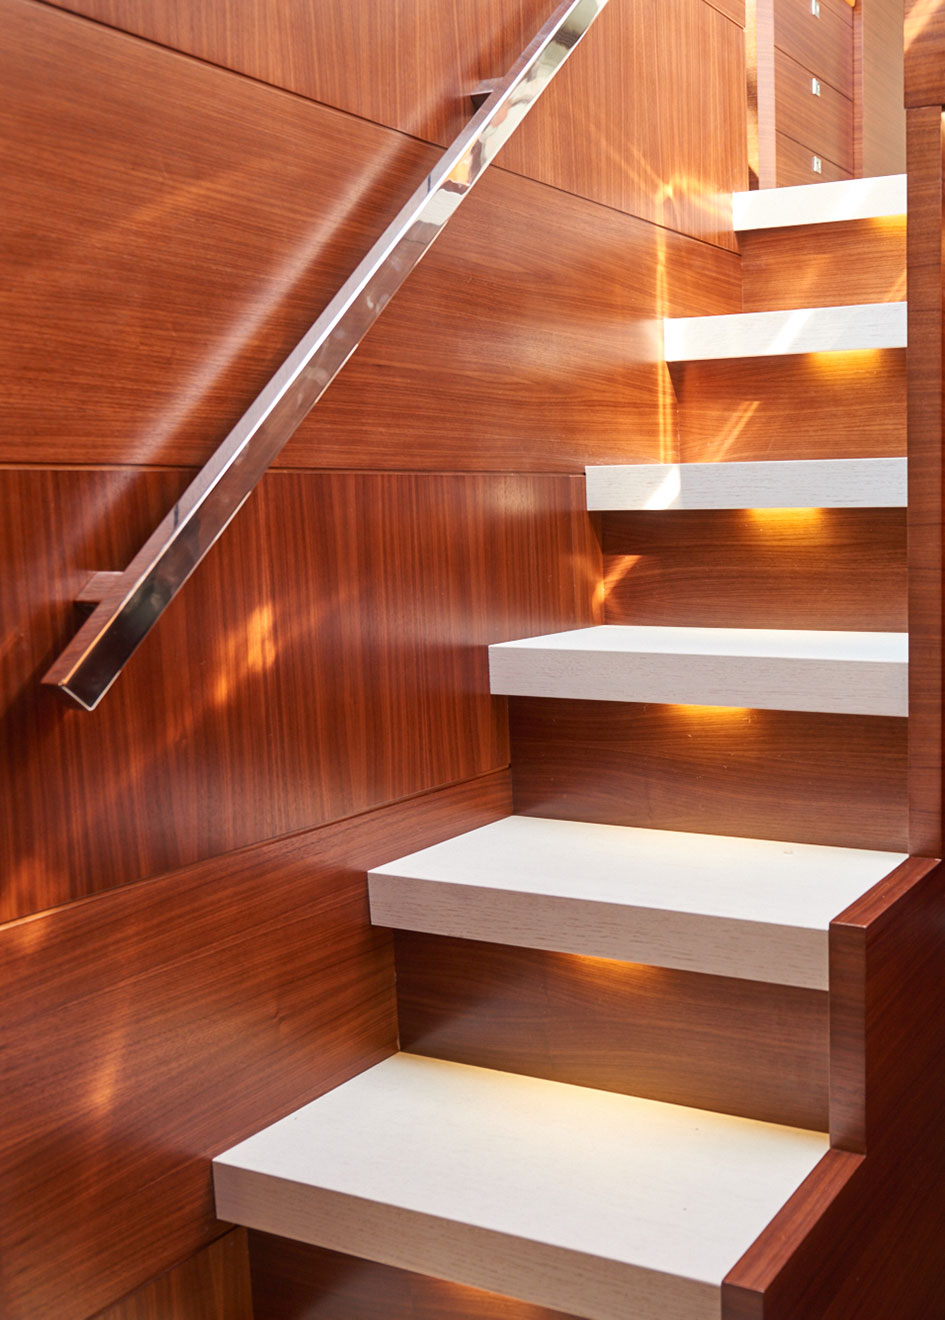 the-staircase-of-the-astondoa-80-glx-yacht-17